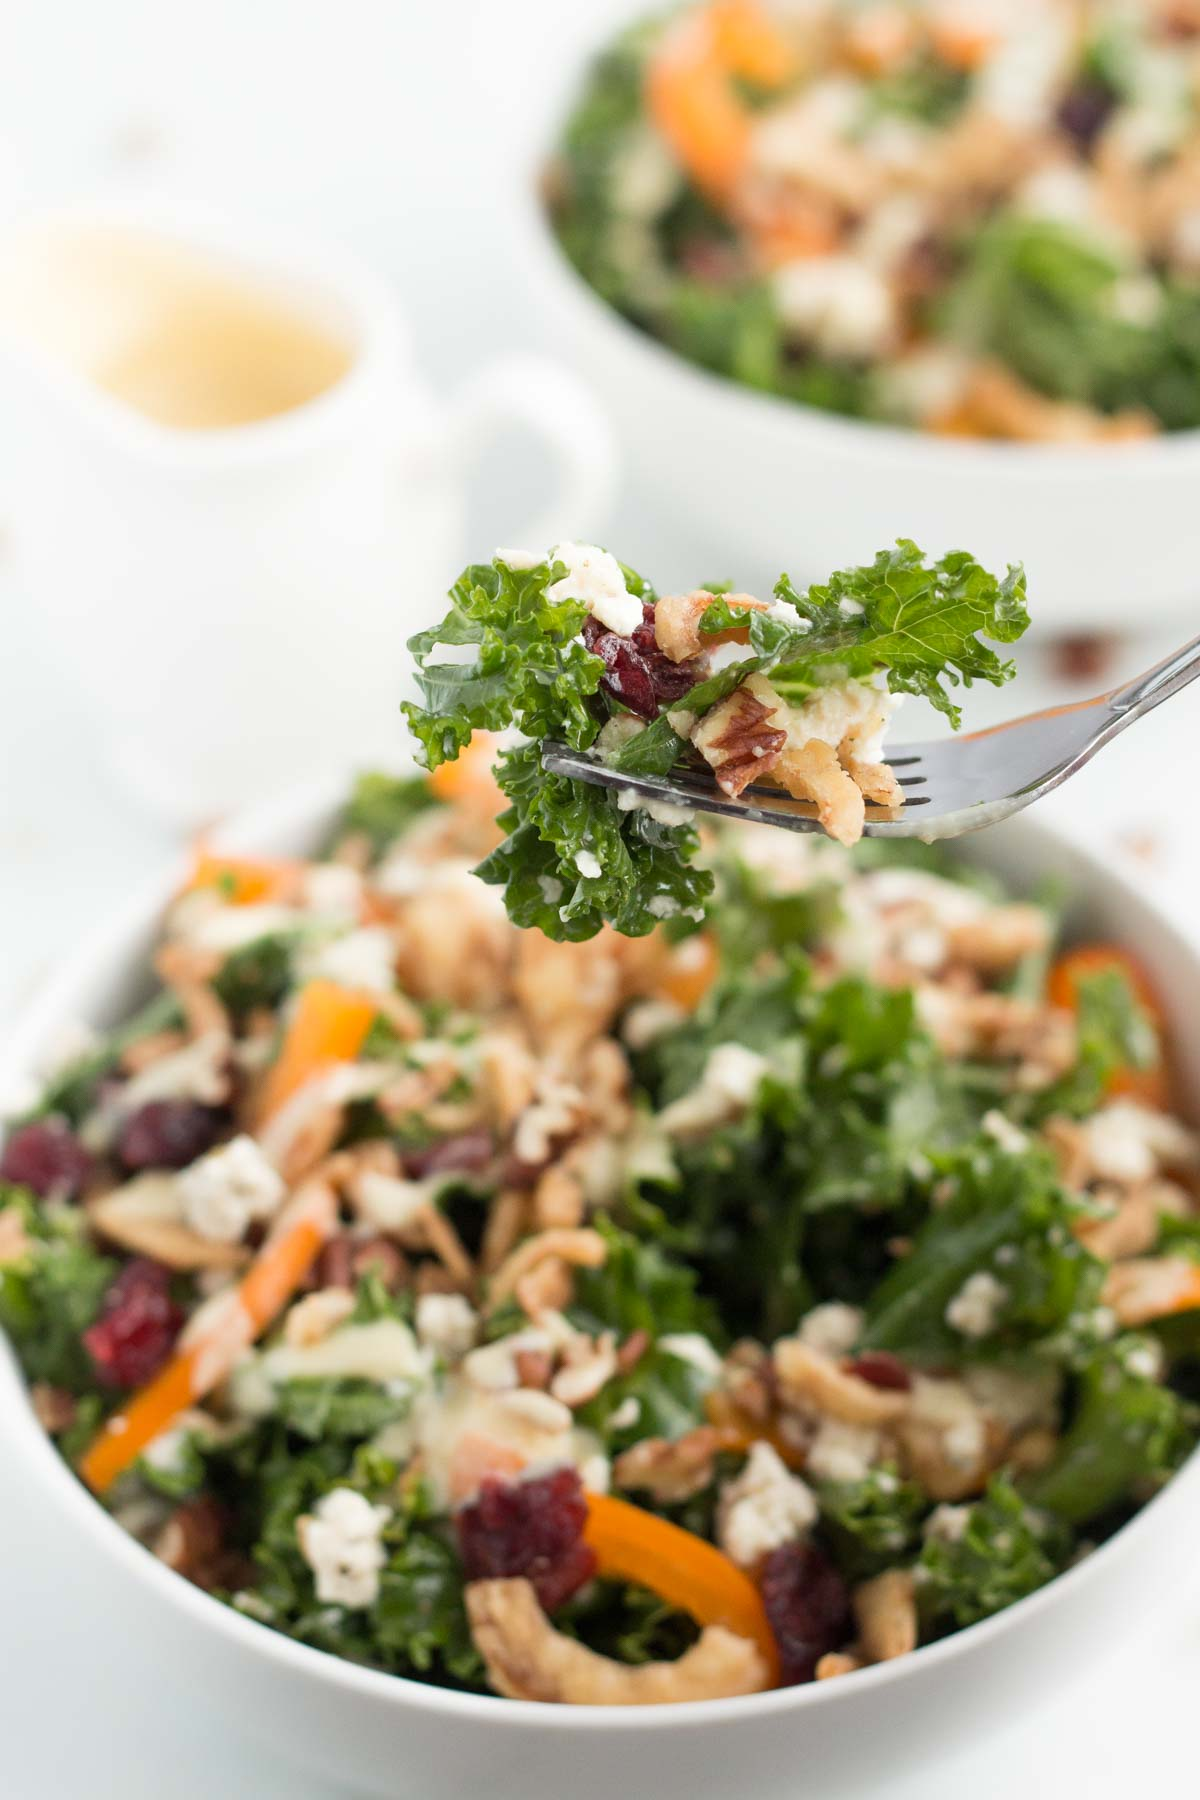 forkful of cranberry pecan kale salad with white salad bowls in background